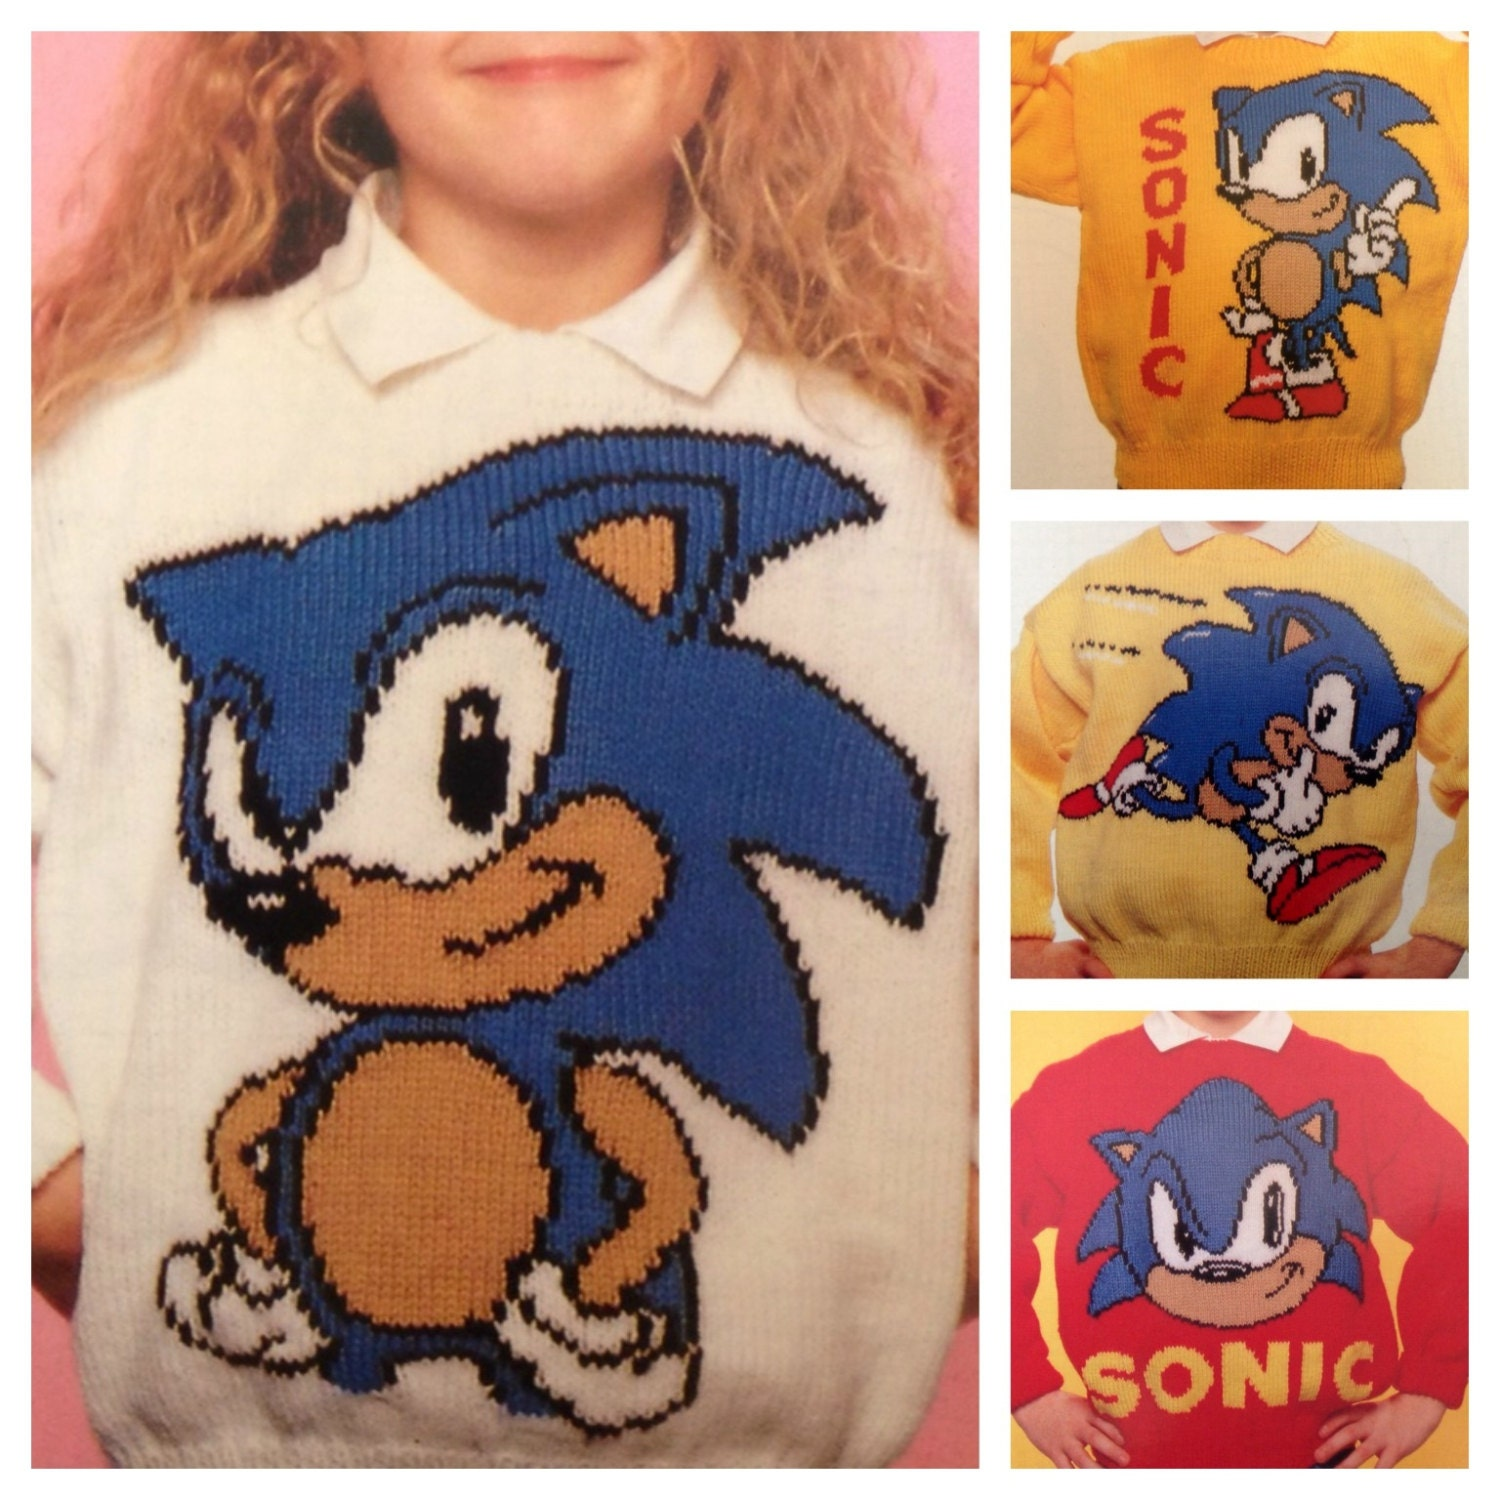 Sonic the Hedgehog knitting pattern sweaters for children and